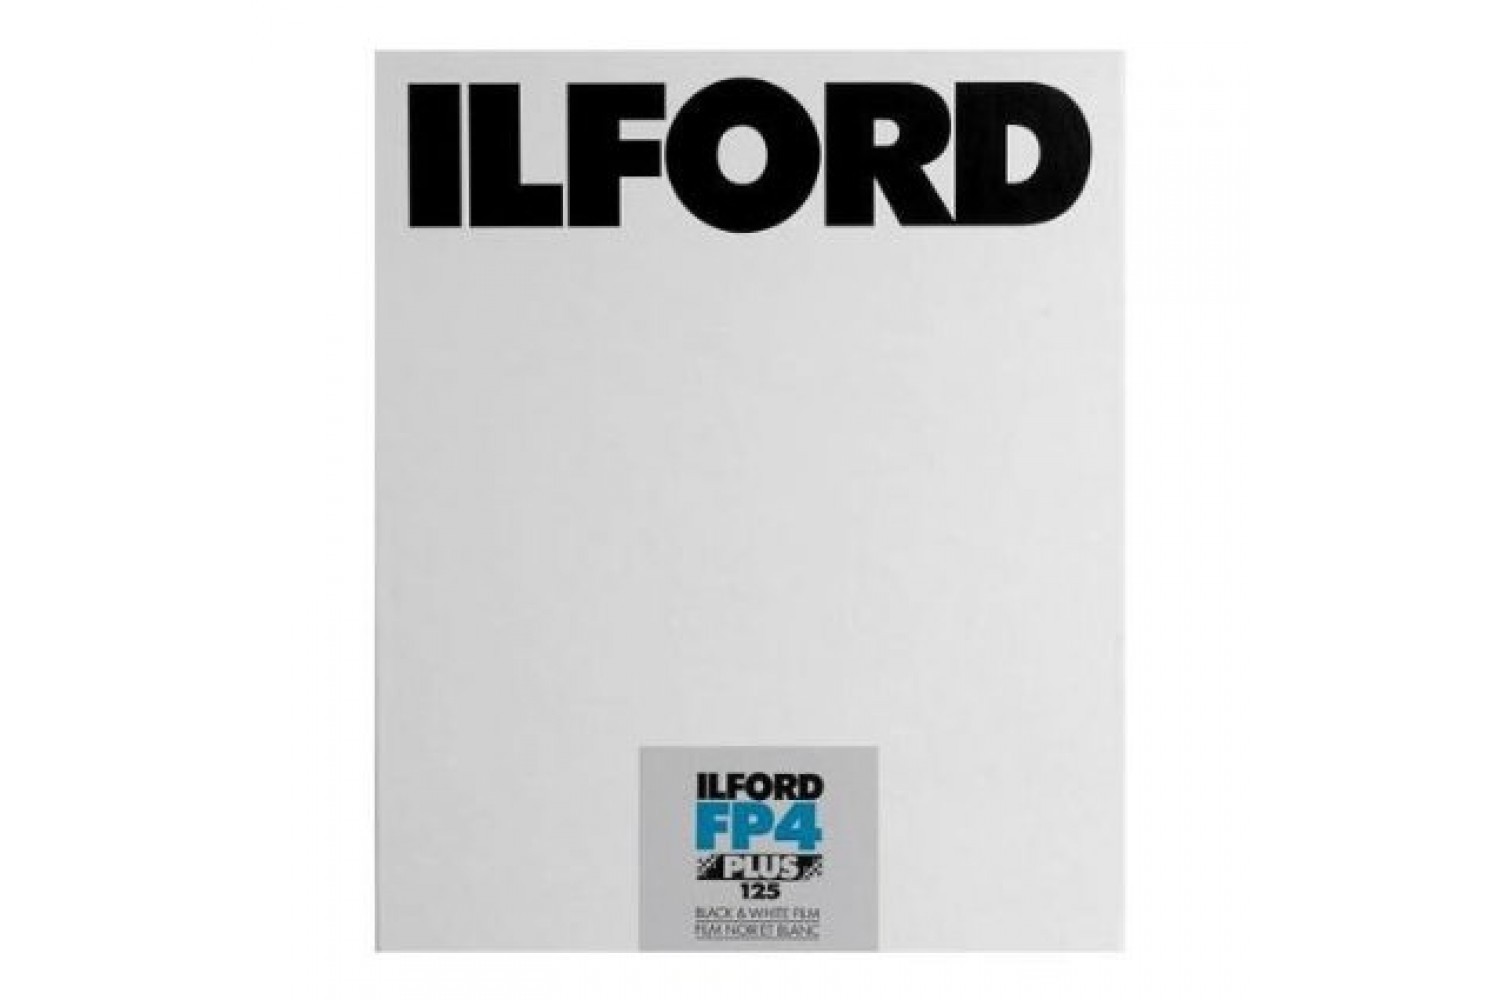 Ilford FP4+ 4x5in 25 sheets